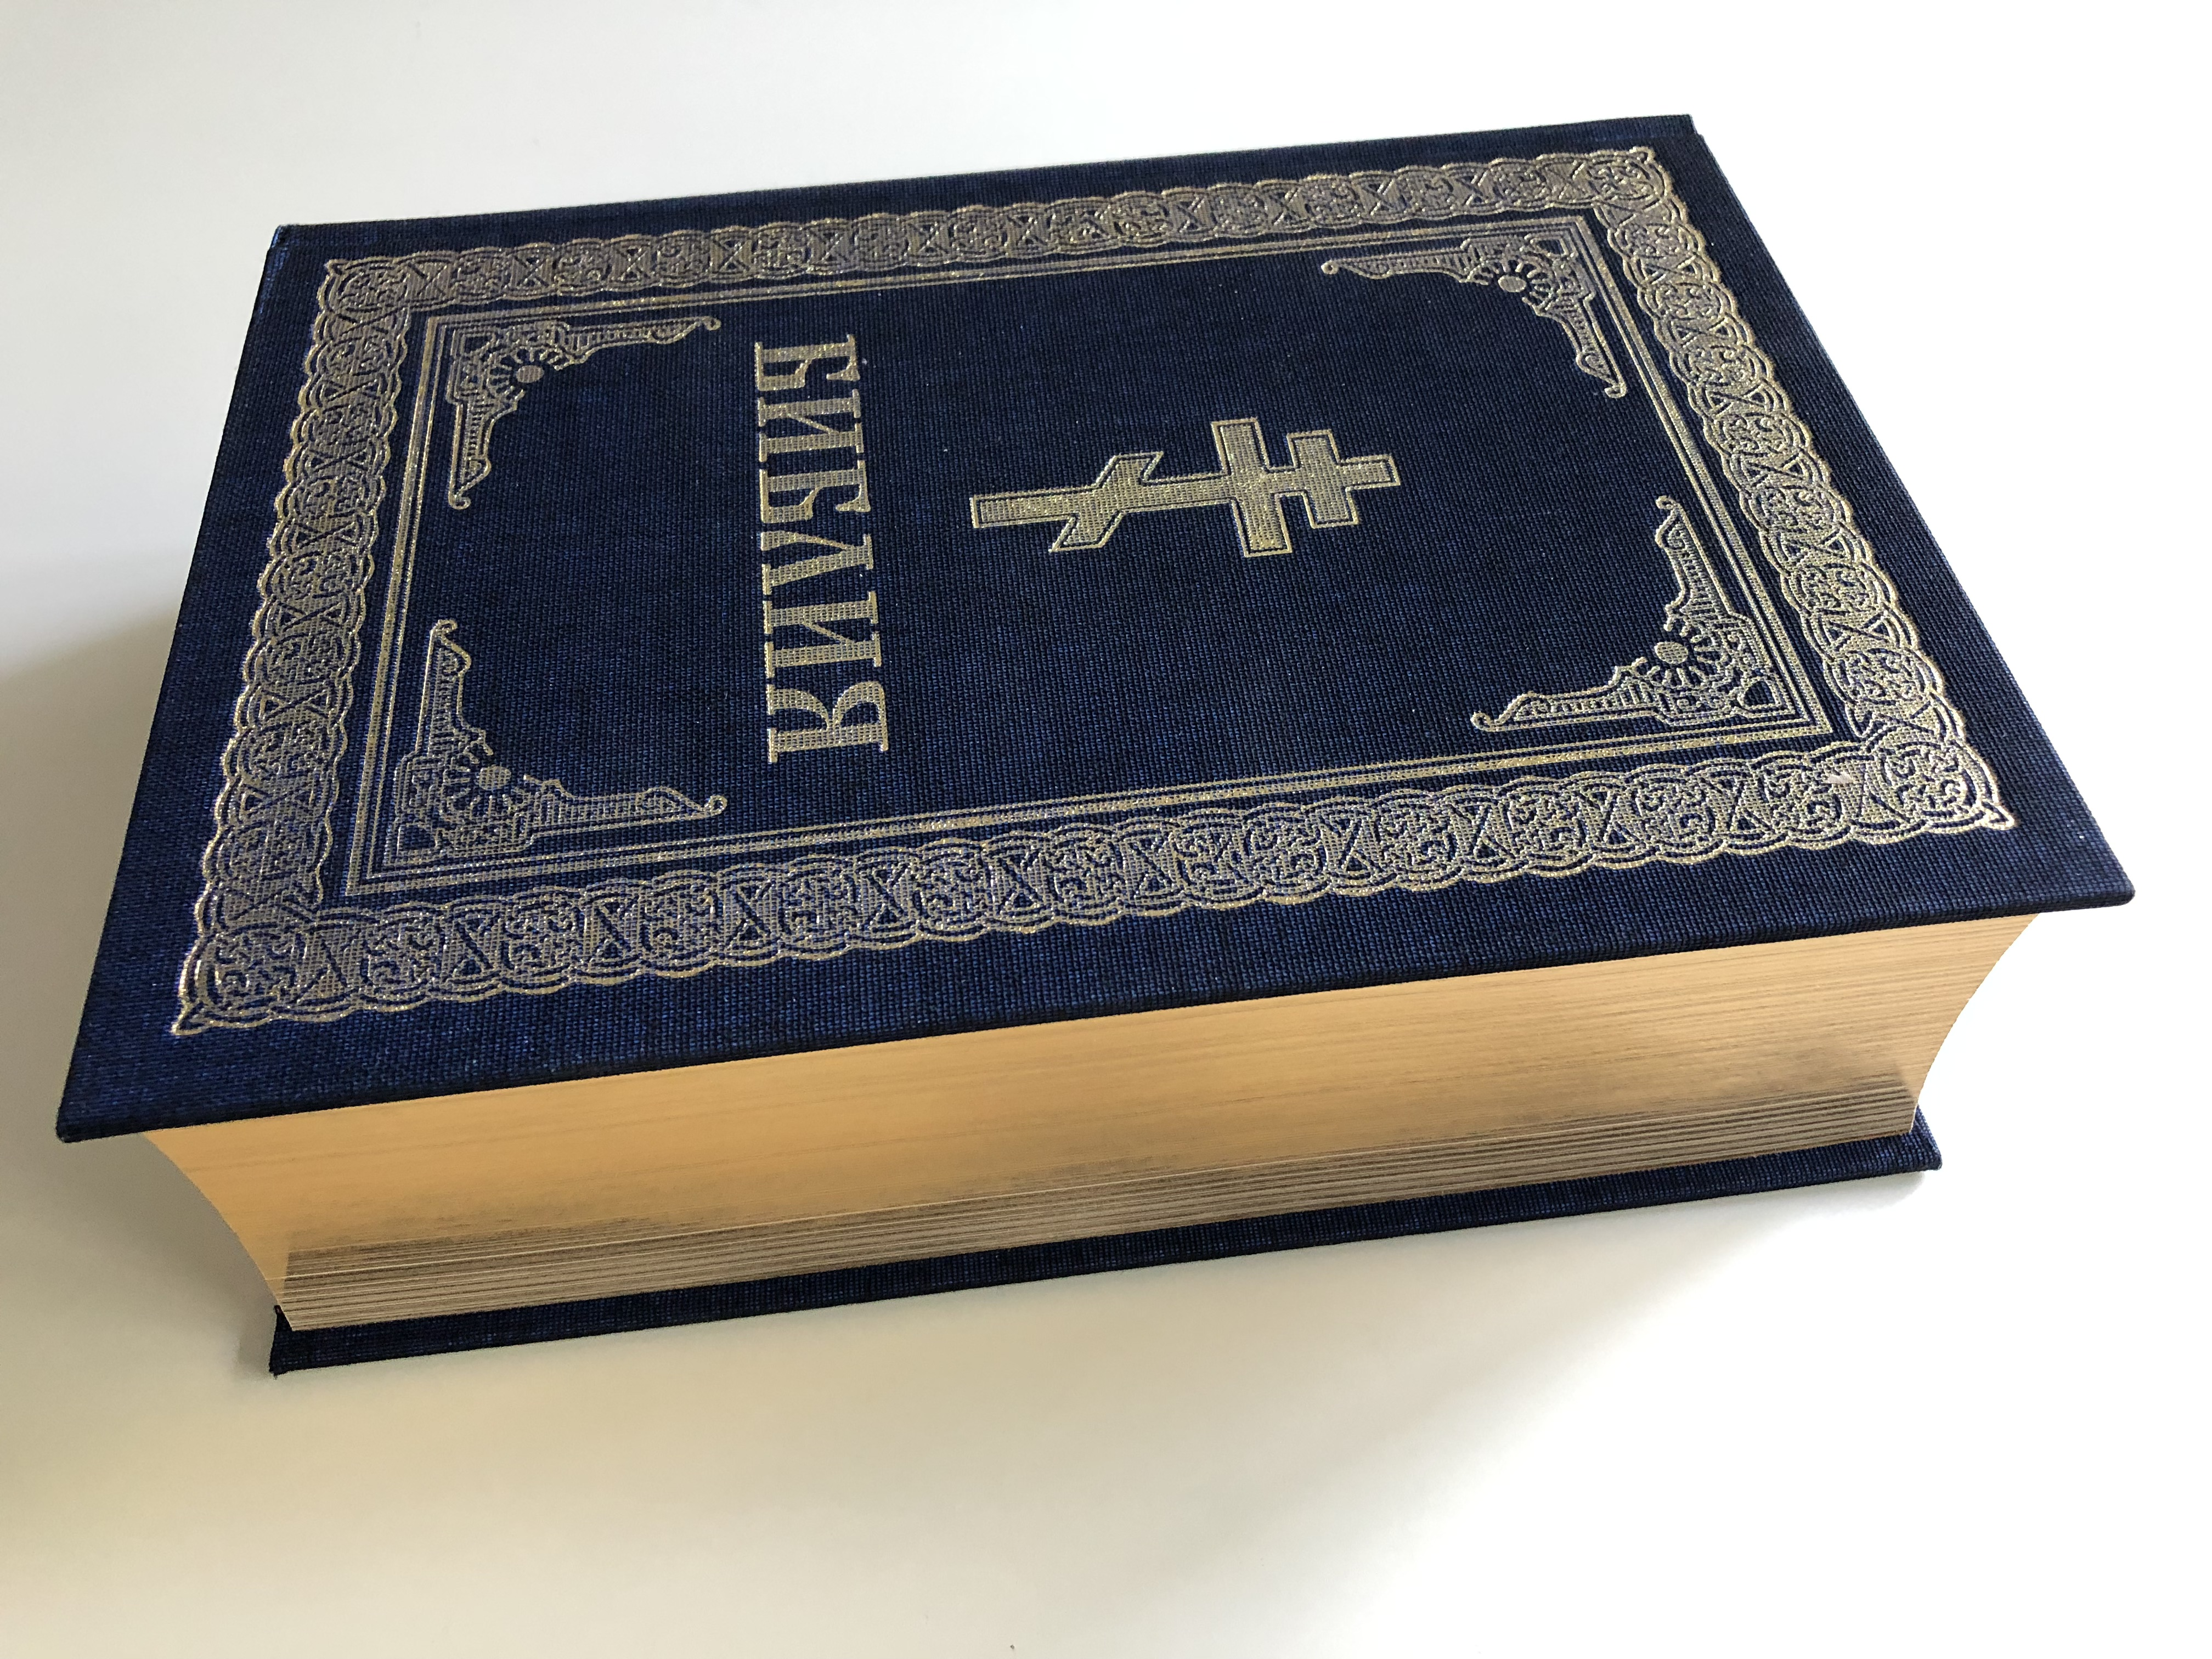 -russian-orthodox-bible-with-deuterocanonical-books-blue-cloth-bound-with-cross-golden-edges-reading-plan-maps-2-.jpg